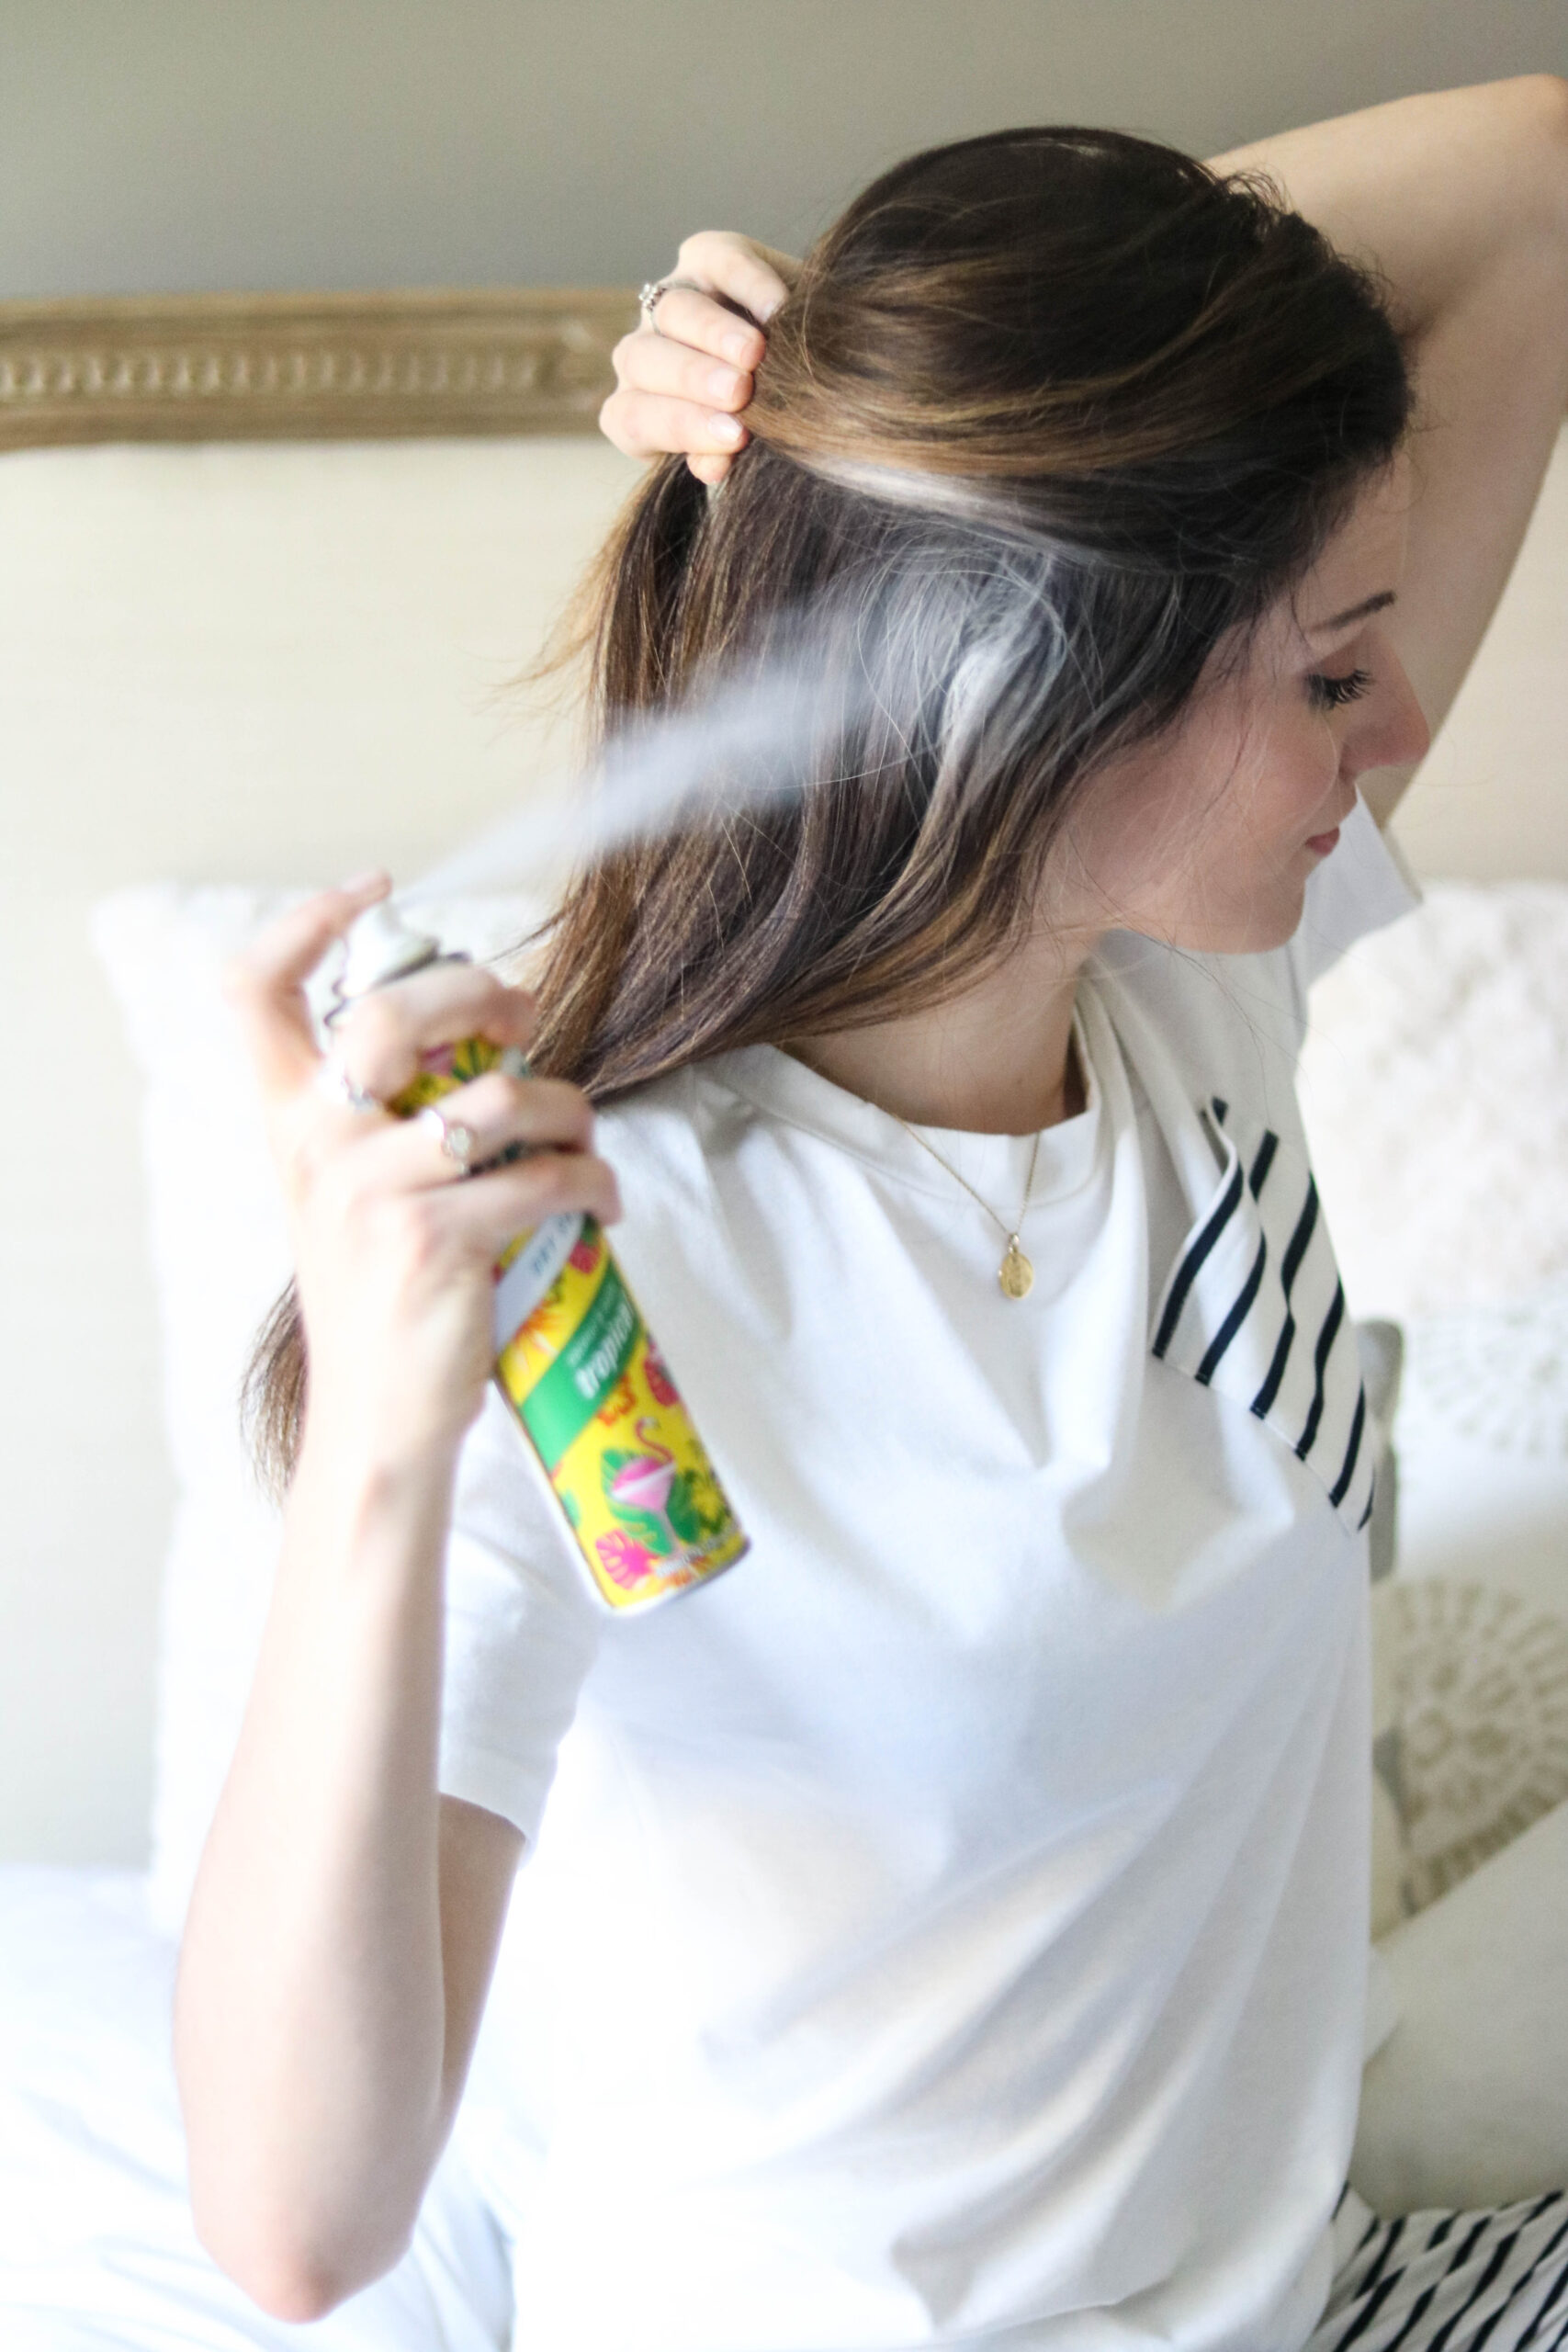 The Ultimate Dry Shampoo Guide 2.0